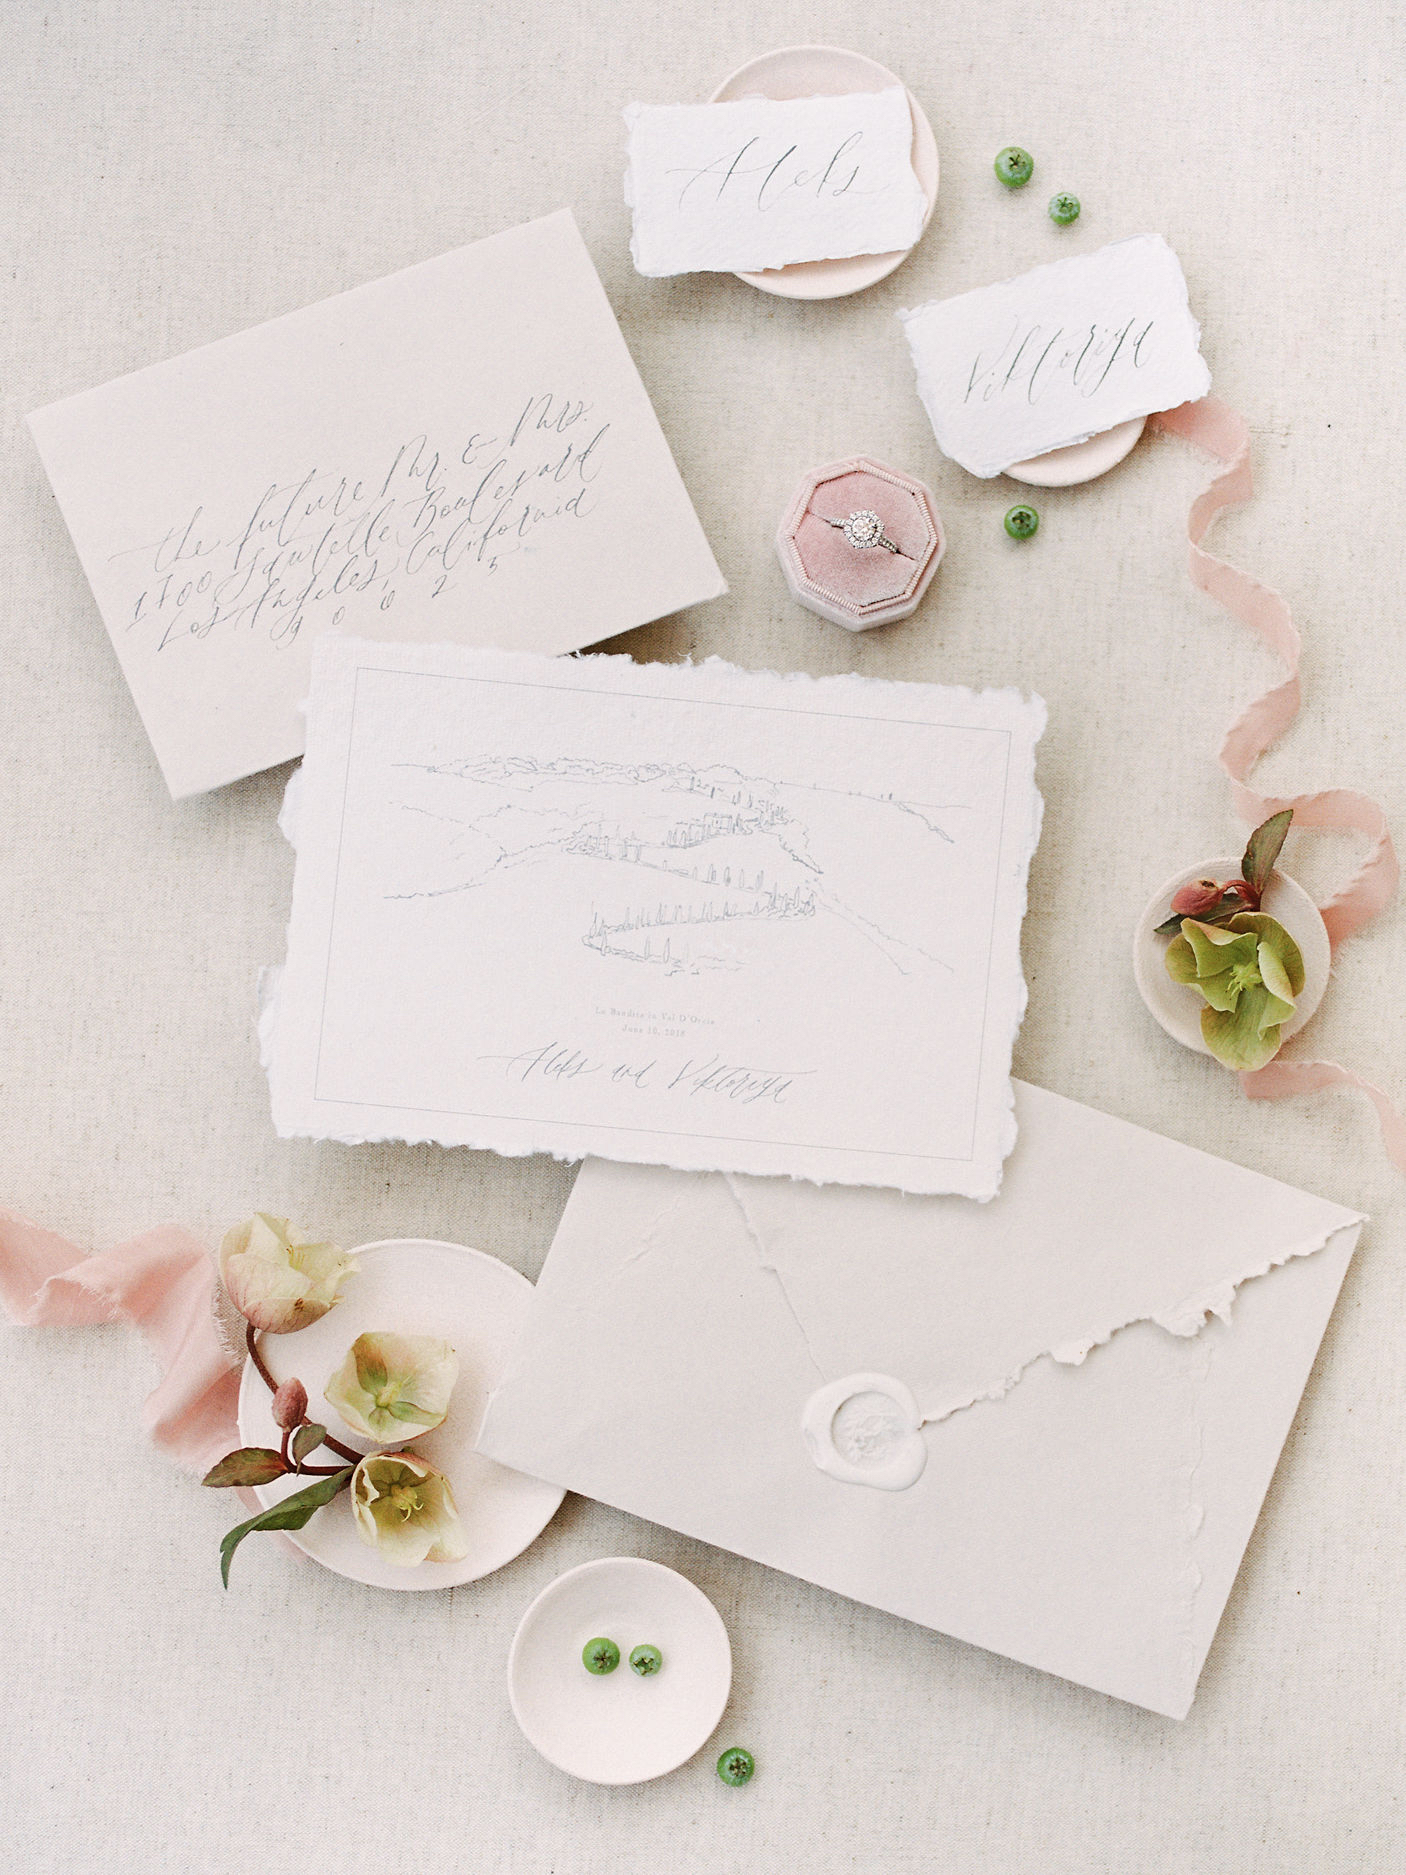 Calligraphed wedding invitation suite on handmade paper